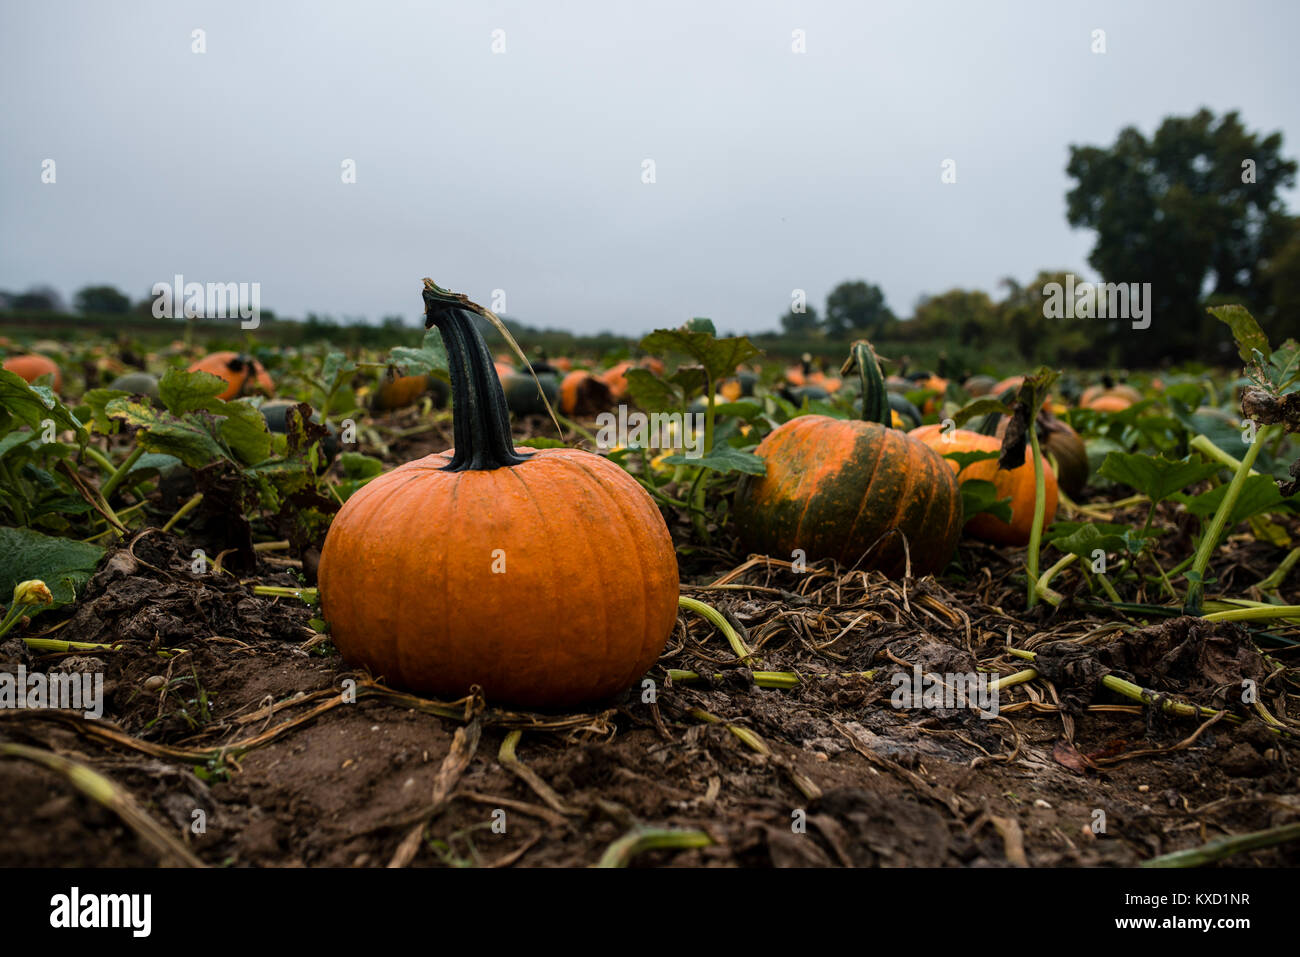 Pumpkins growing on field against cloudy sky - Stock Image